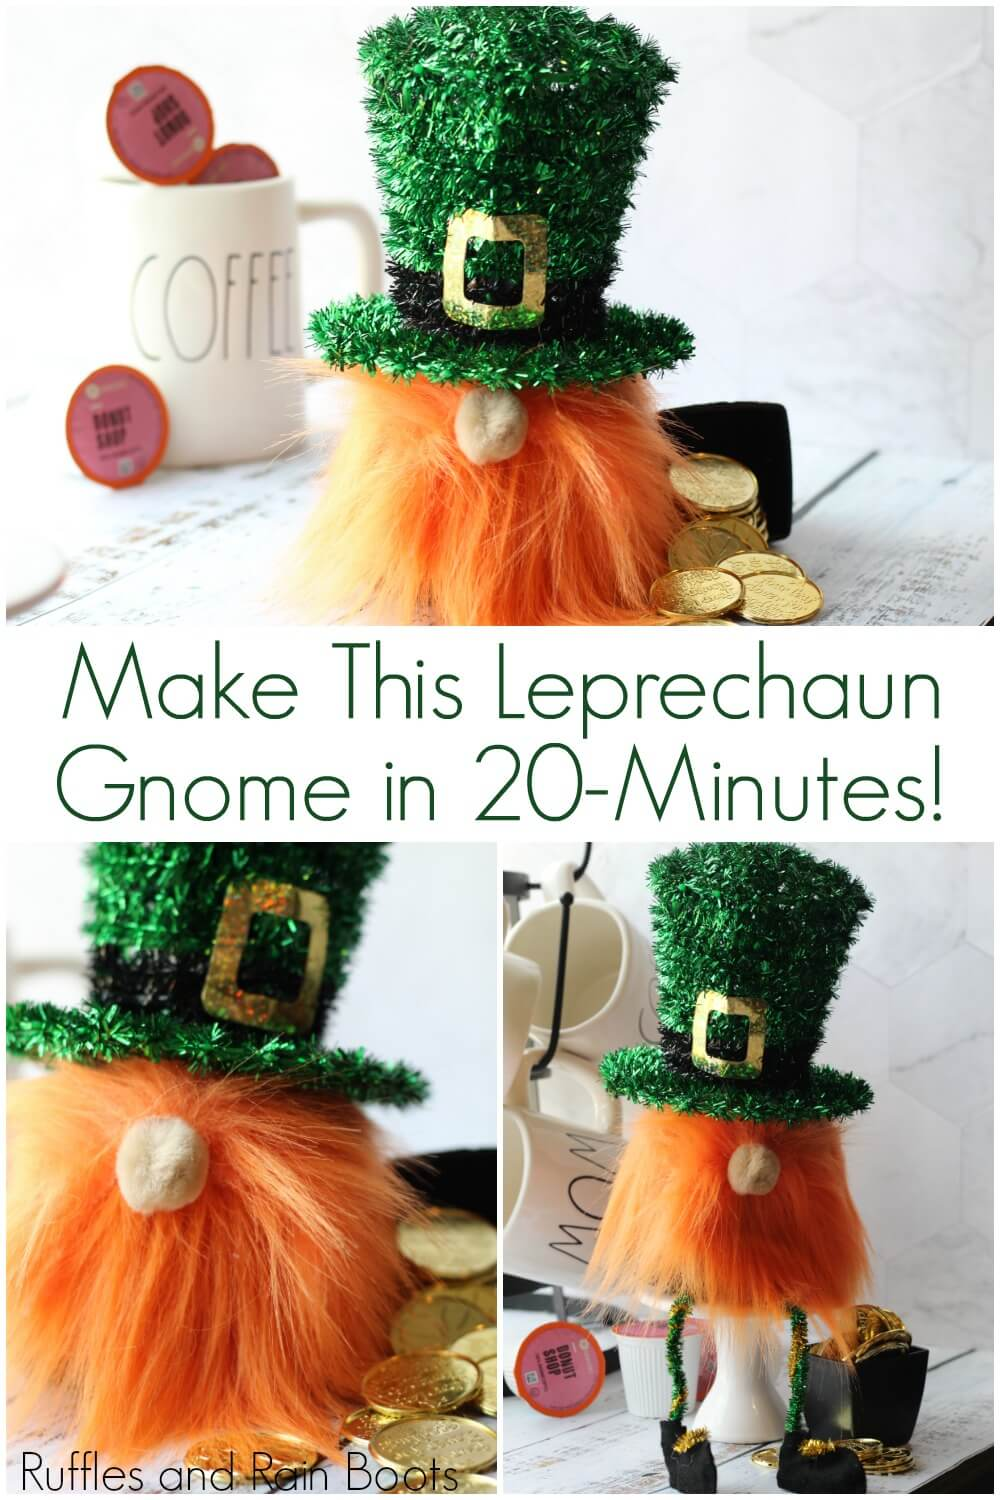 photo collage of St Patricks Day gnome with text which reads Make this leprechaun gnome in 20 minutes